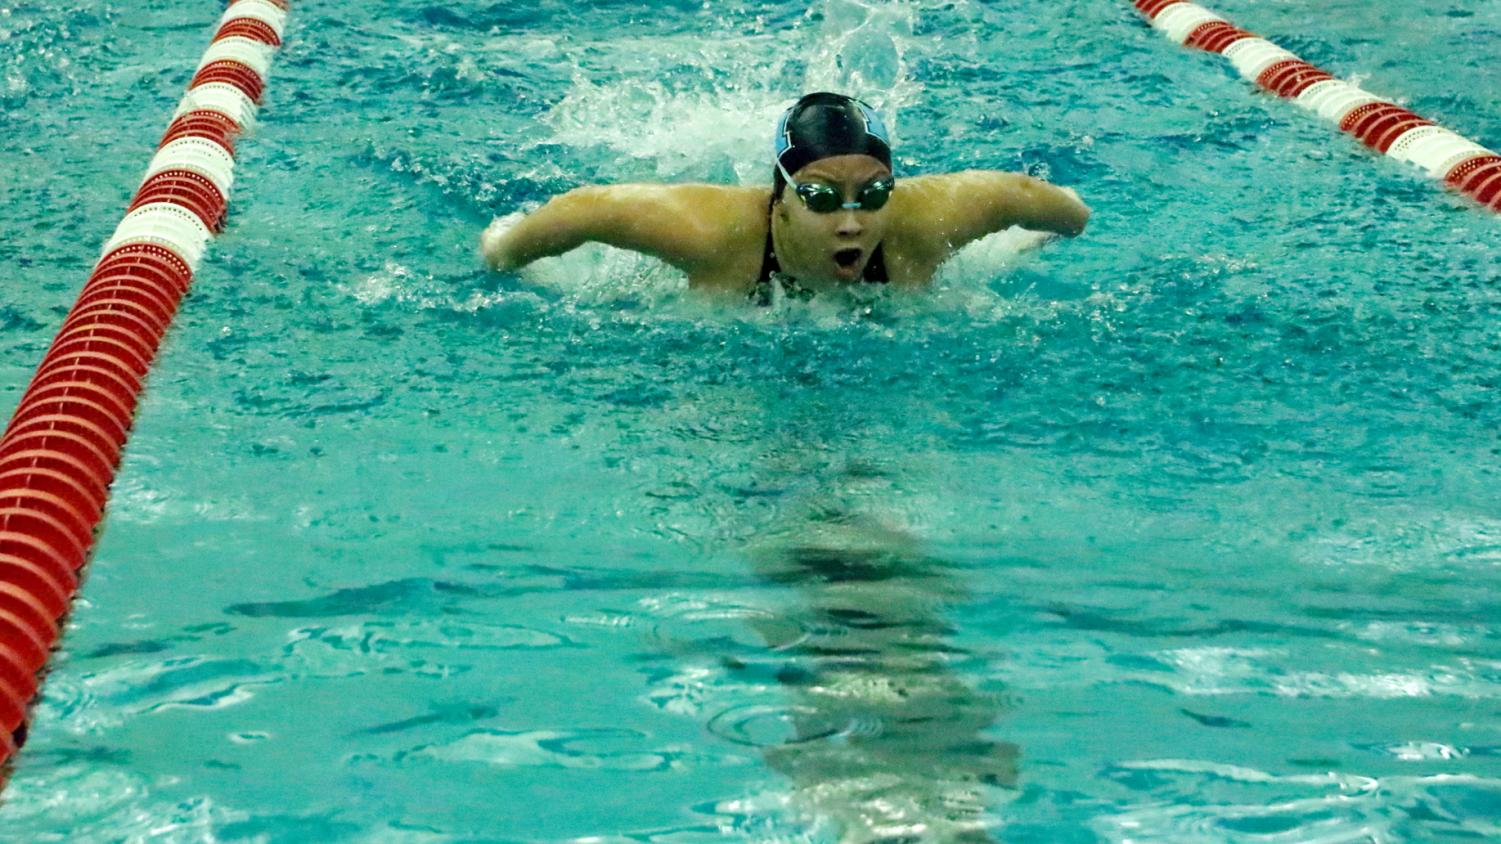 Amanda Yu, senior, pushes to finish strong during the last 50 meters of the 100 meter fly race during Conference finals at Kirkwood High School on Thursday, Feb. 6. Yu came in third, with Marquette going on to win the meet with a score of 441 points.